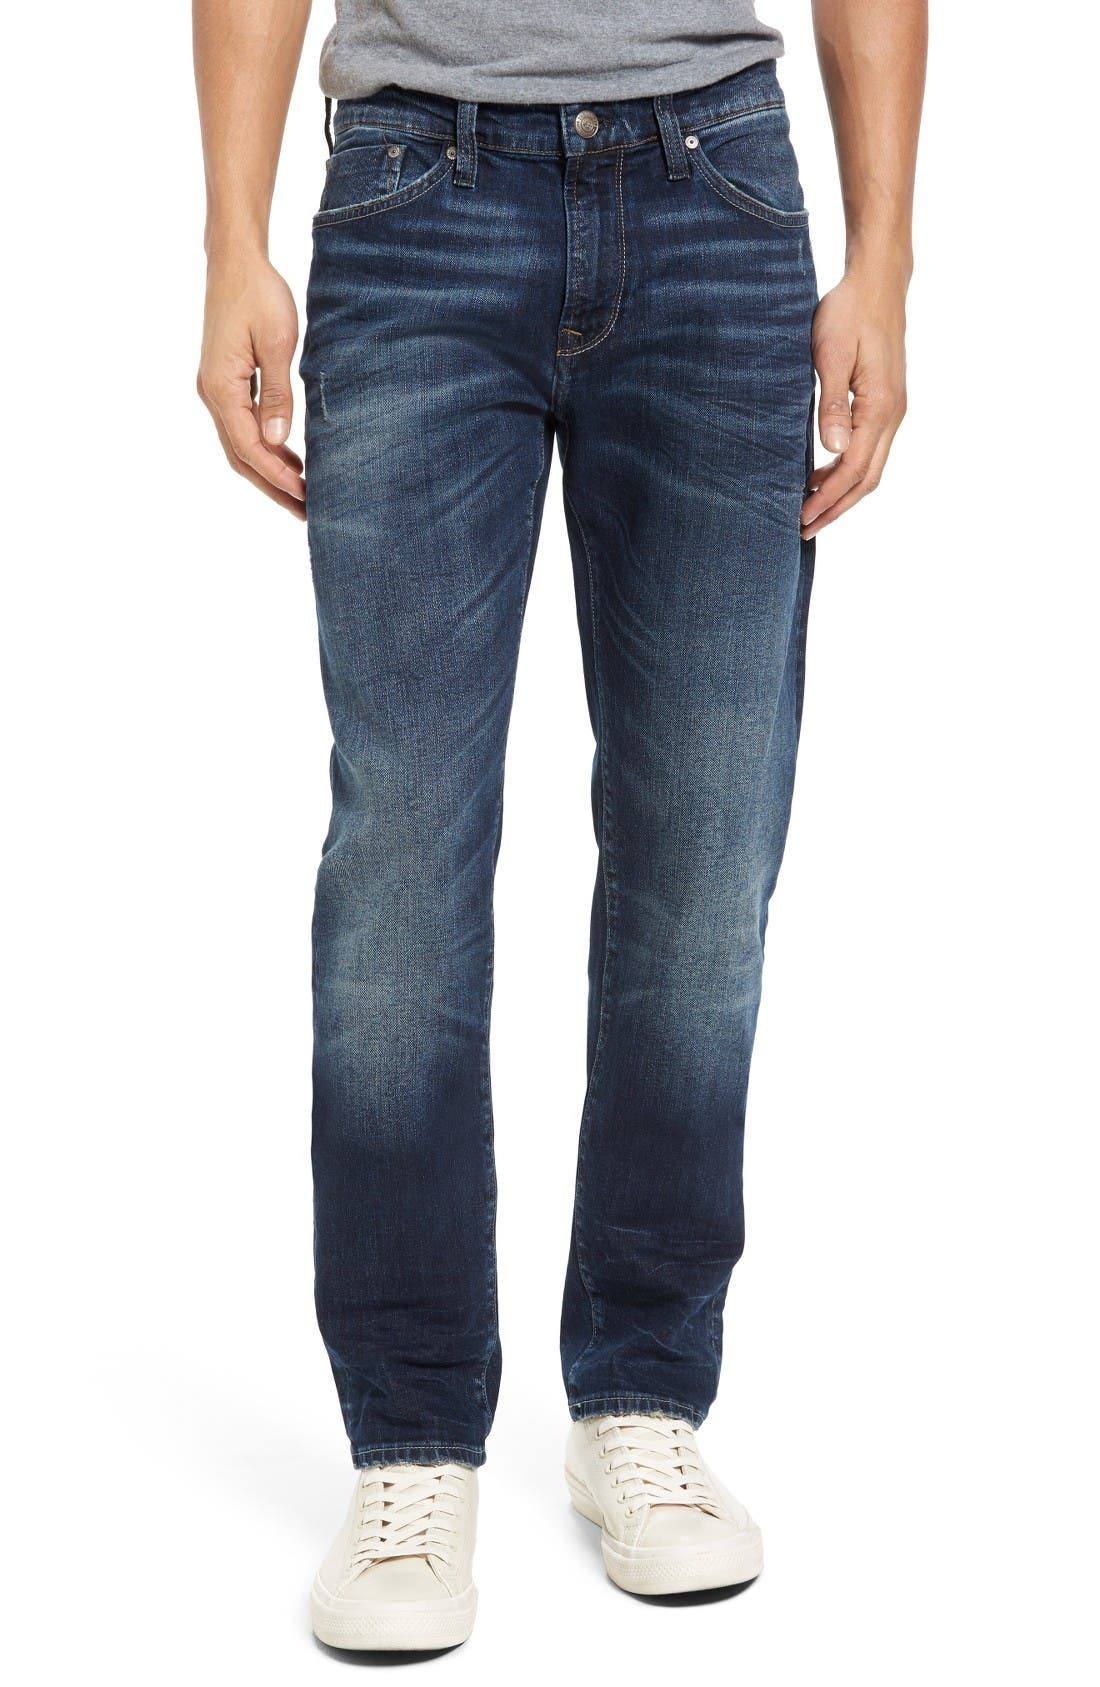 Mavi Jeans Jake Easy Slim Fit Jeans (Dark Ripped)